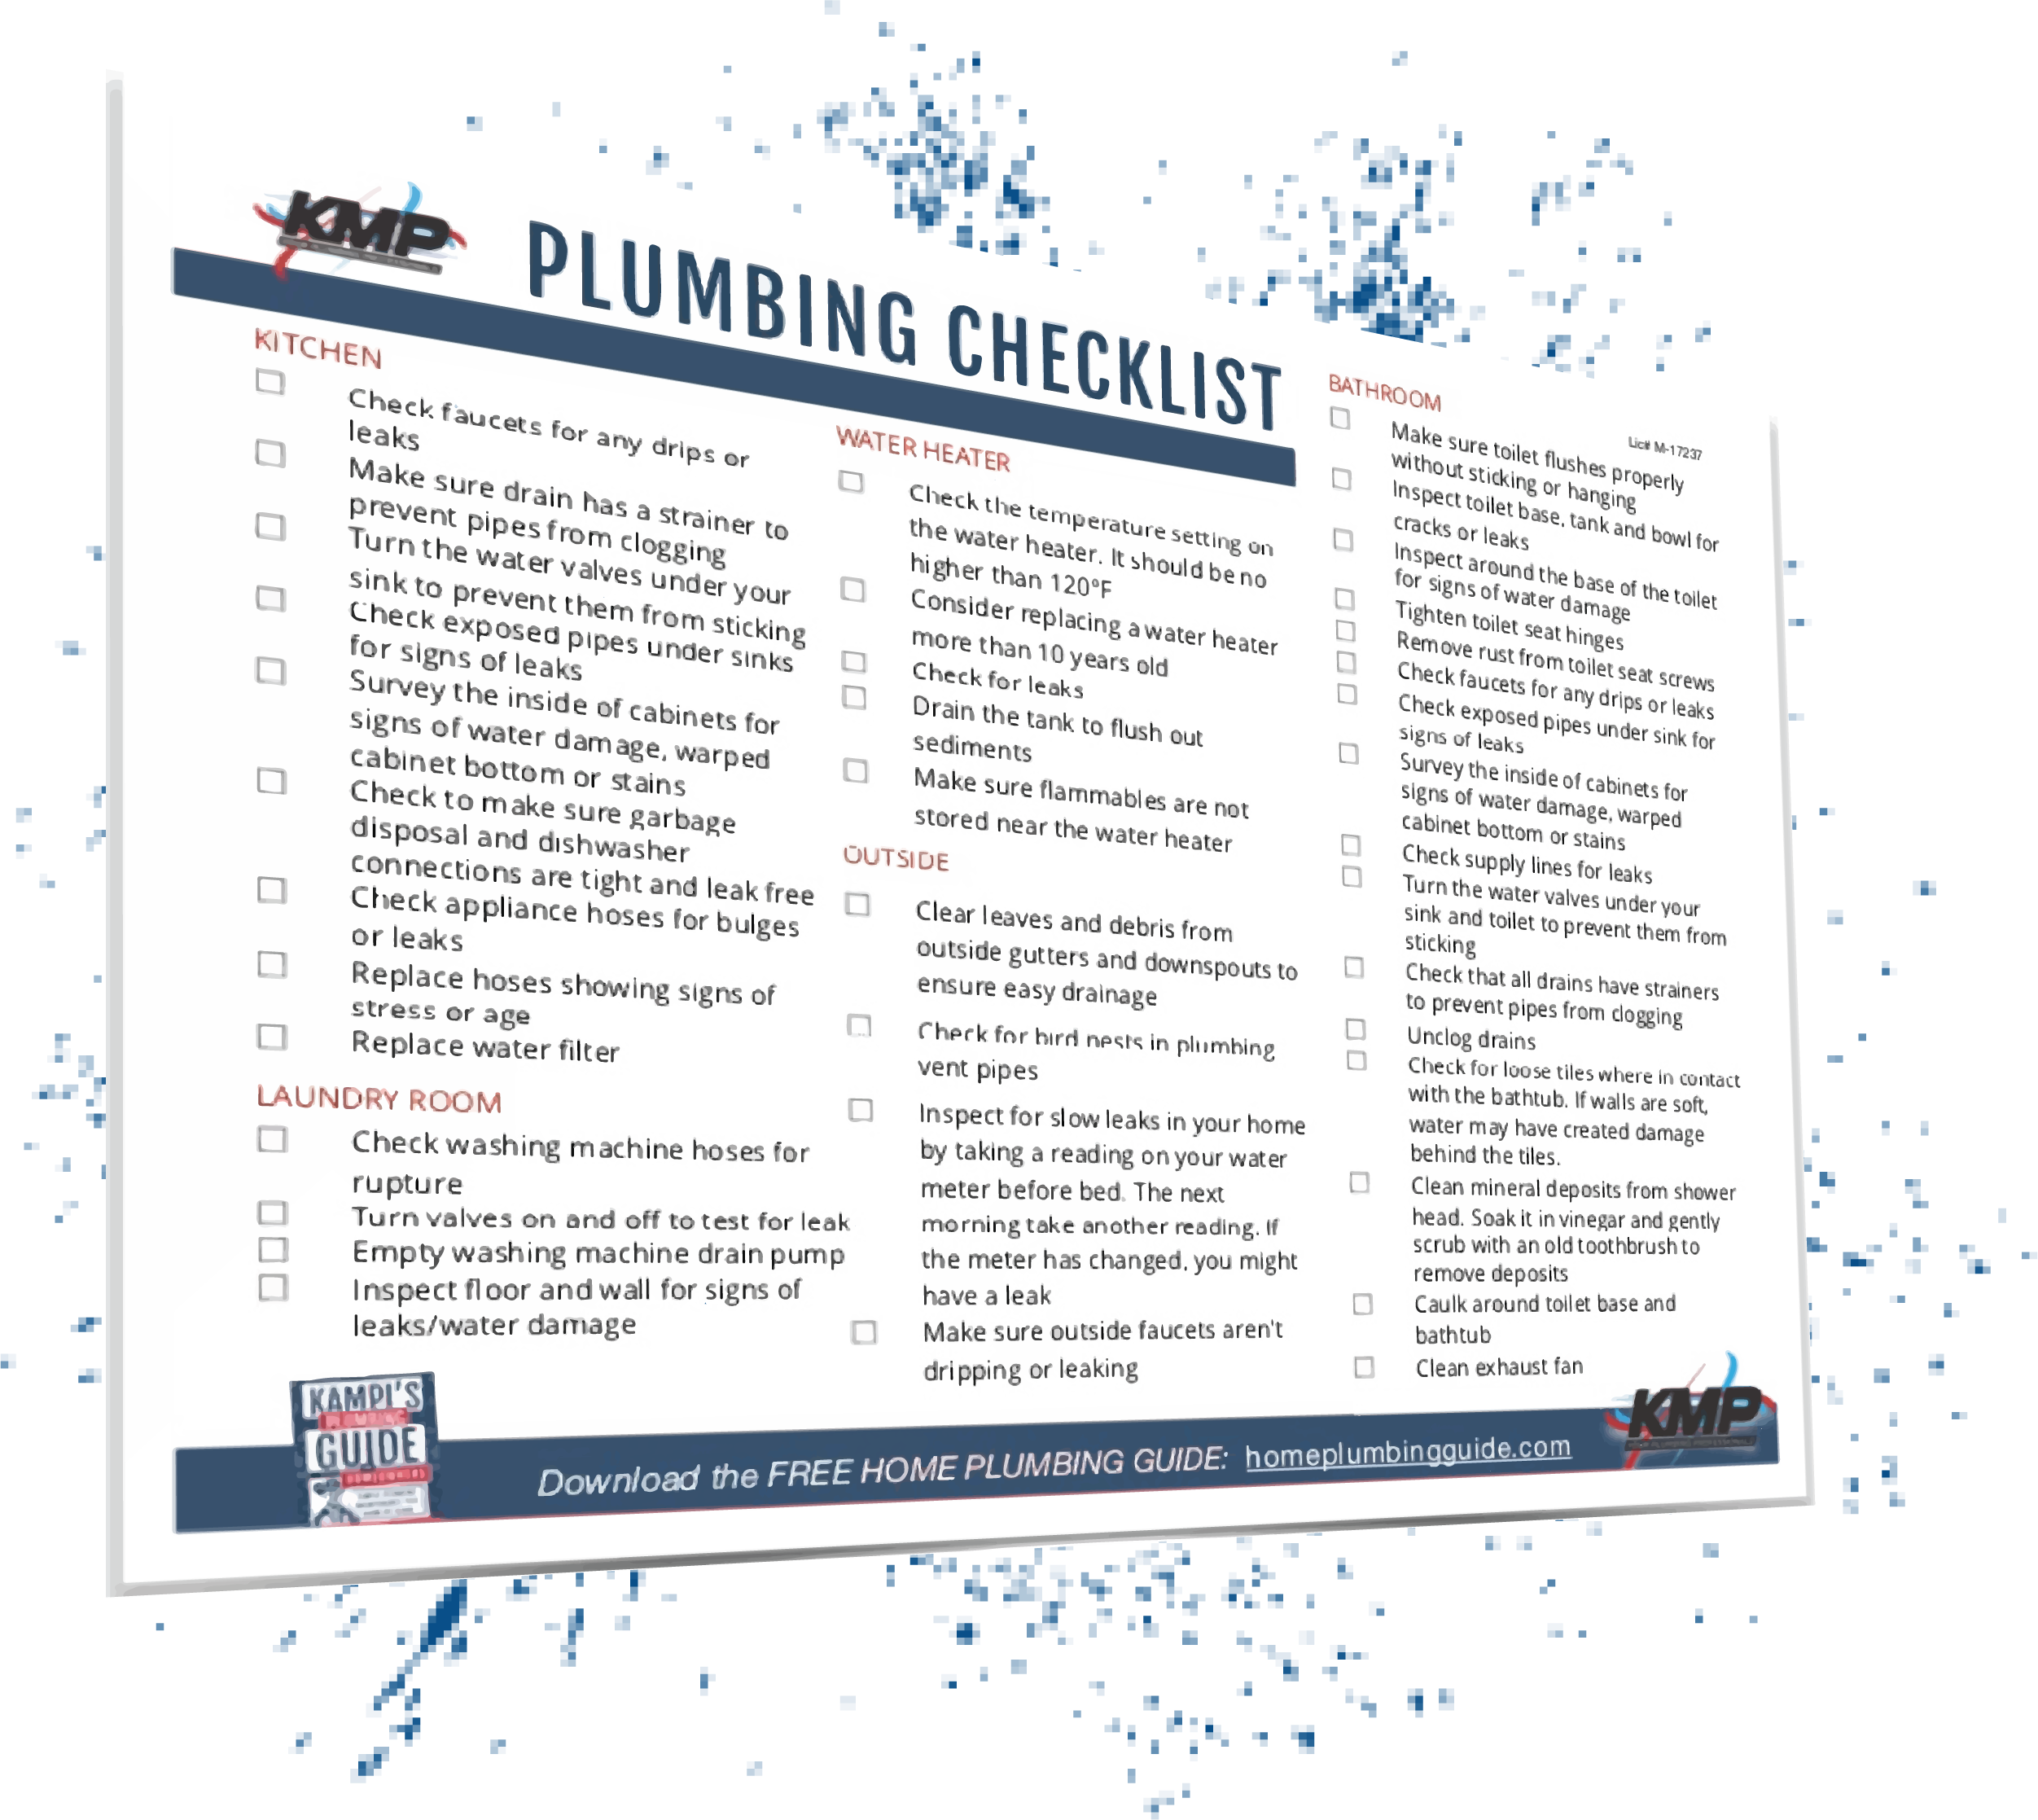 Plumbing Checklist for Homeowners